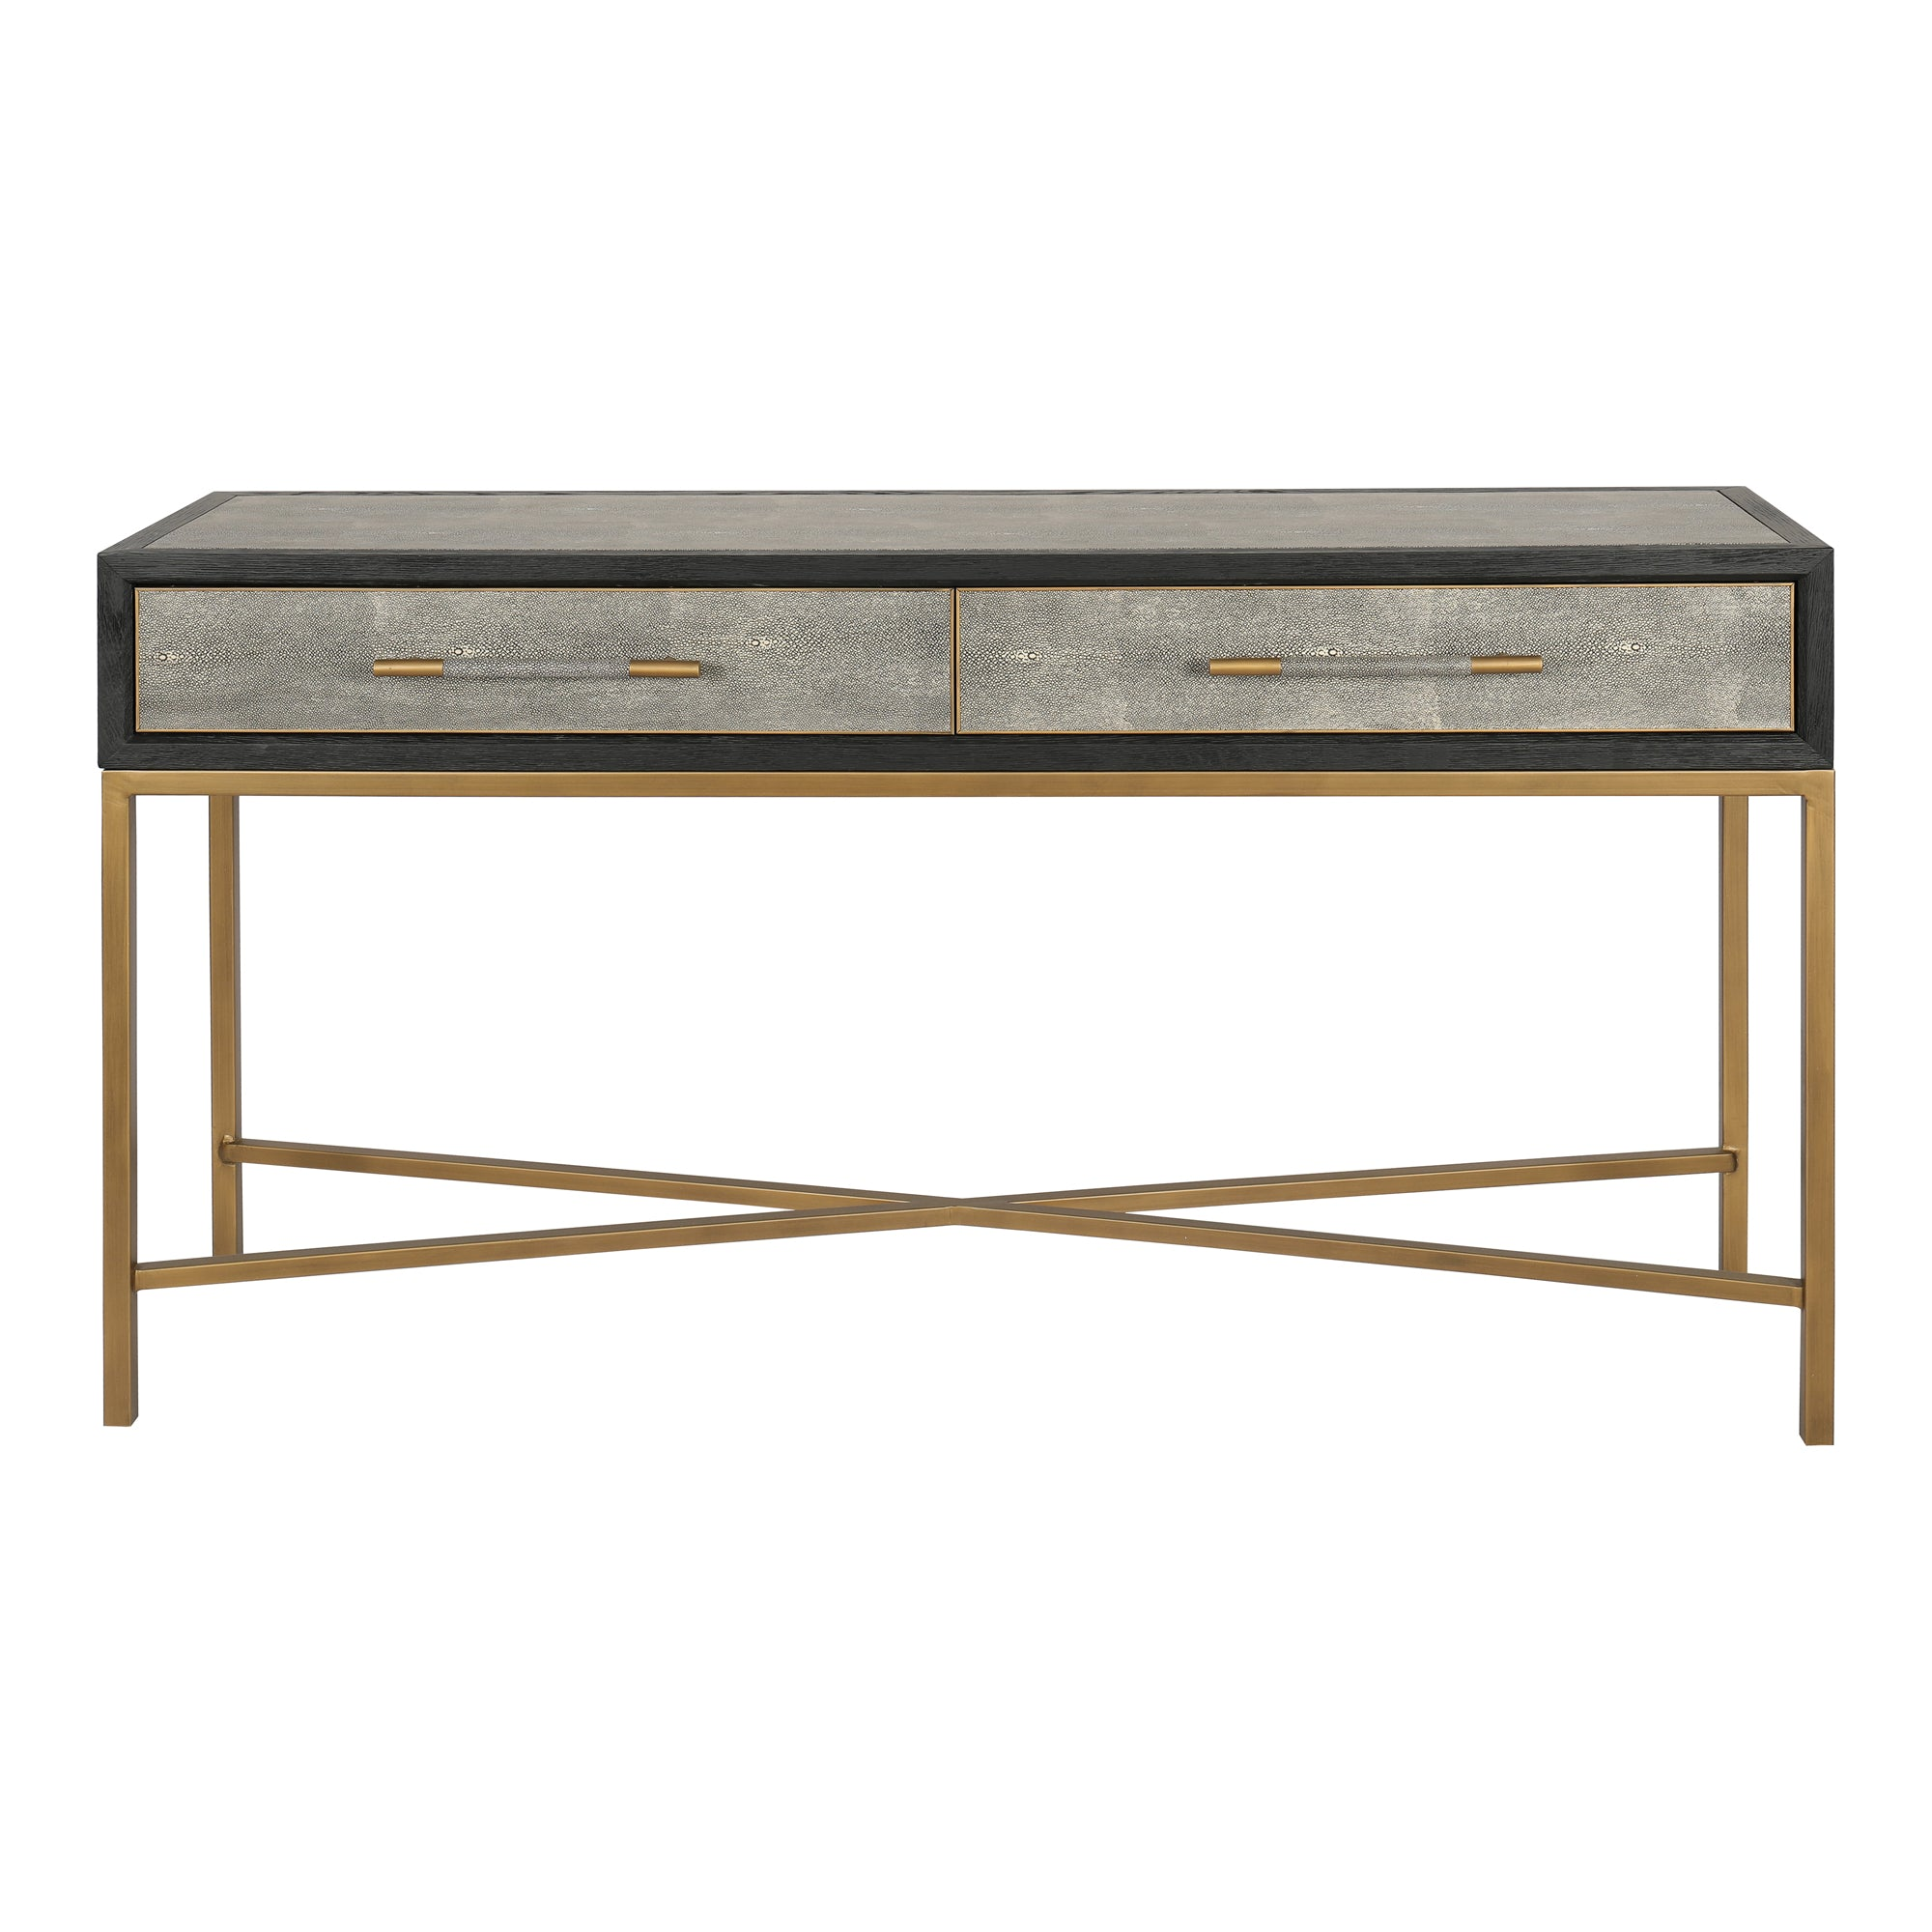 Mako console table, grey - Tops-Dress